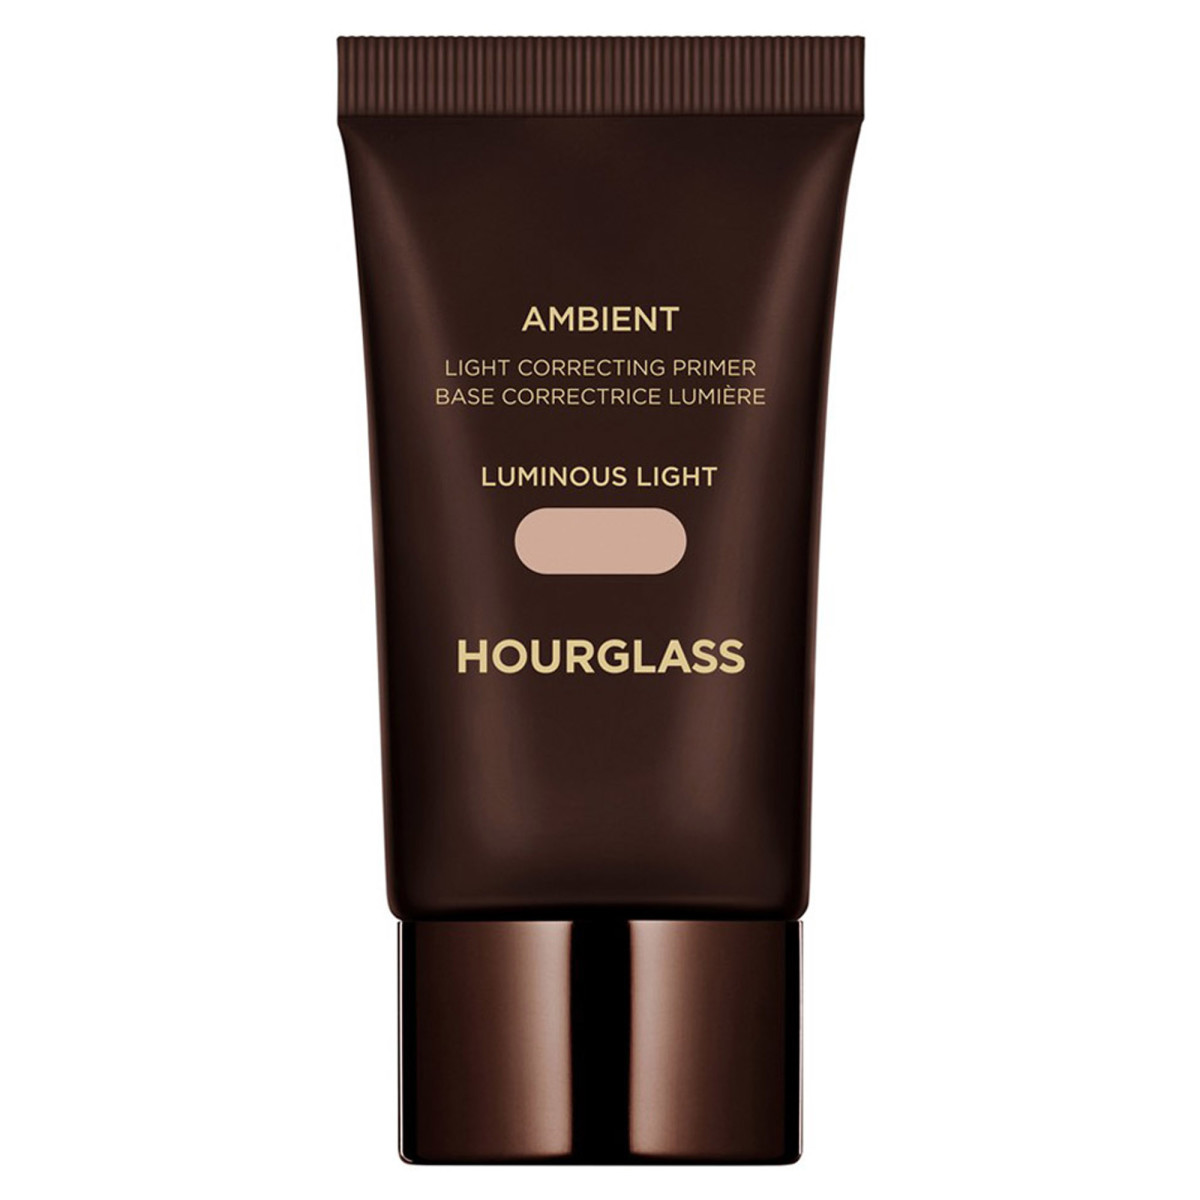 Hourglass Ambient Light Correcting Primer in Luminous Light